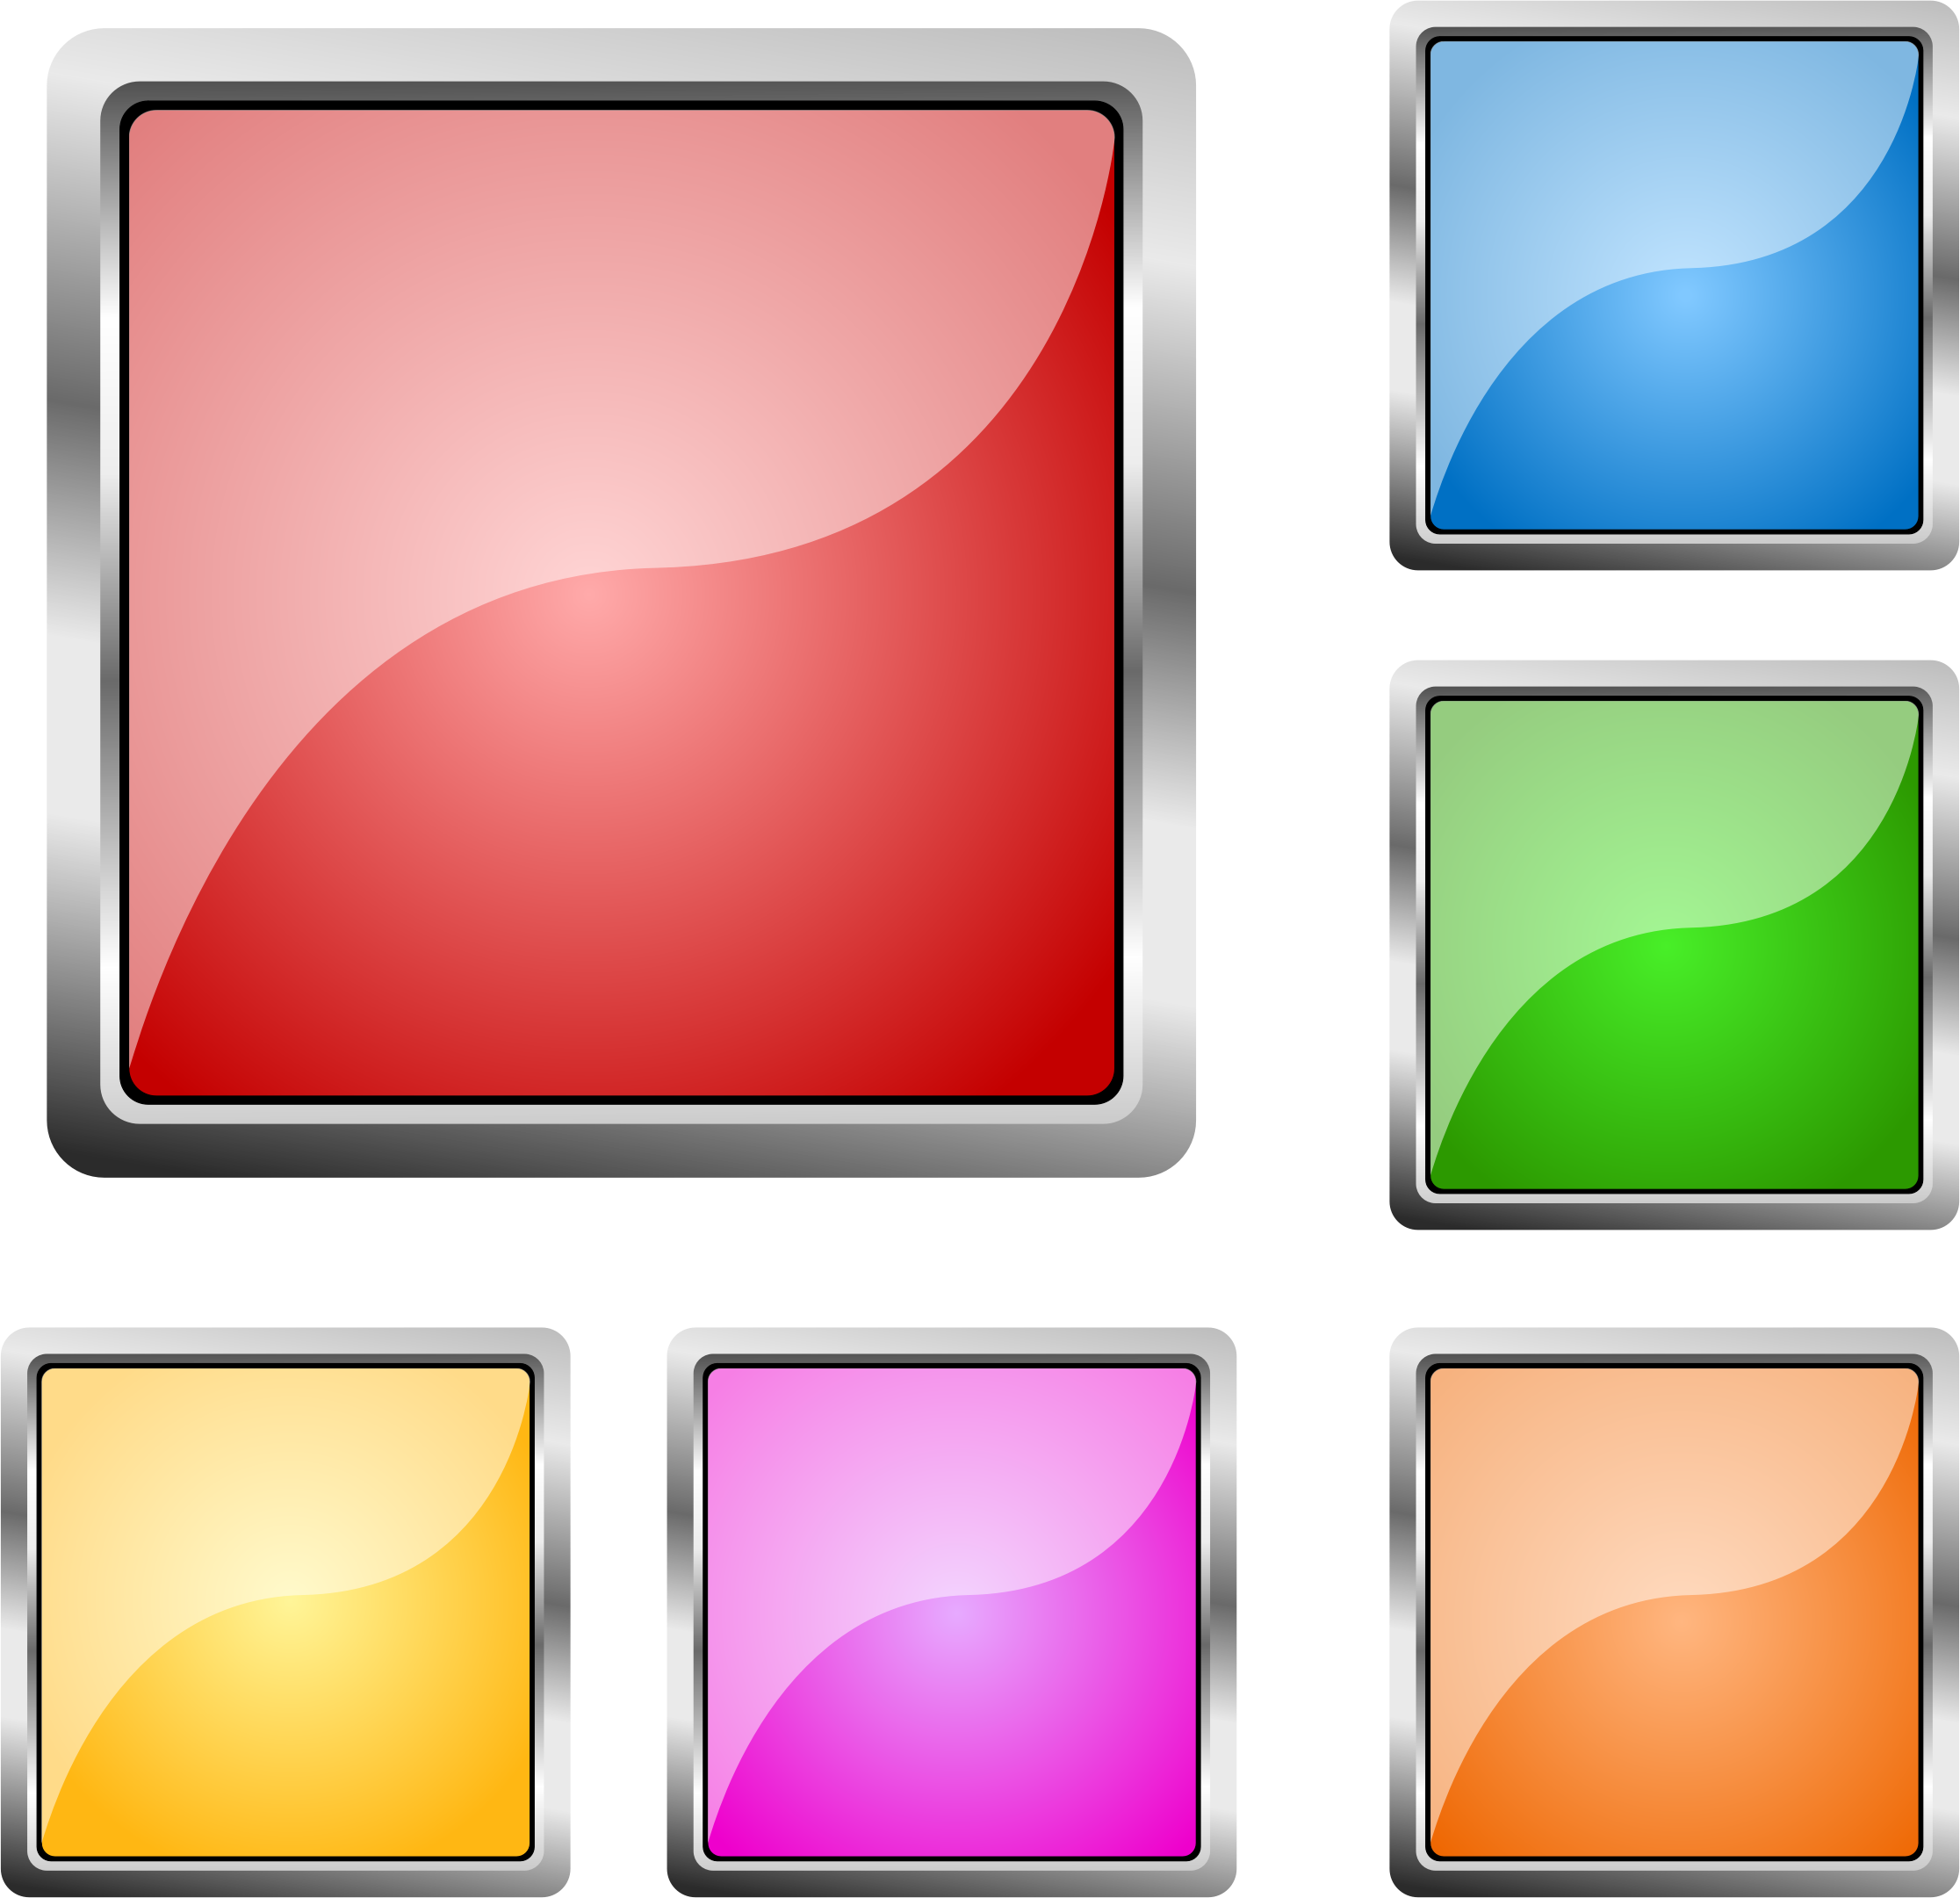 Square clipart sqaure. Steel buttons big image